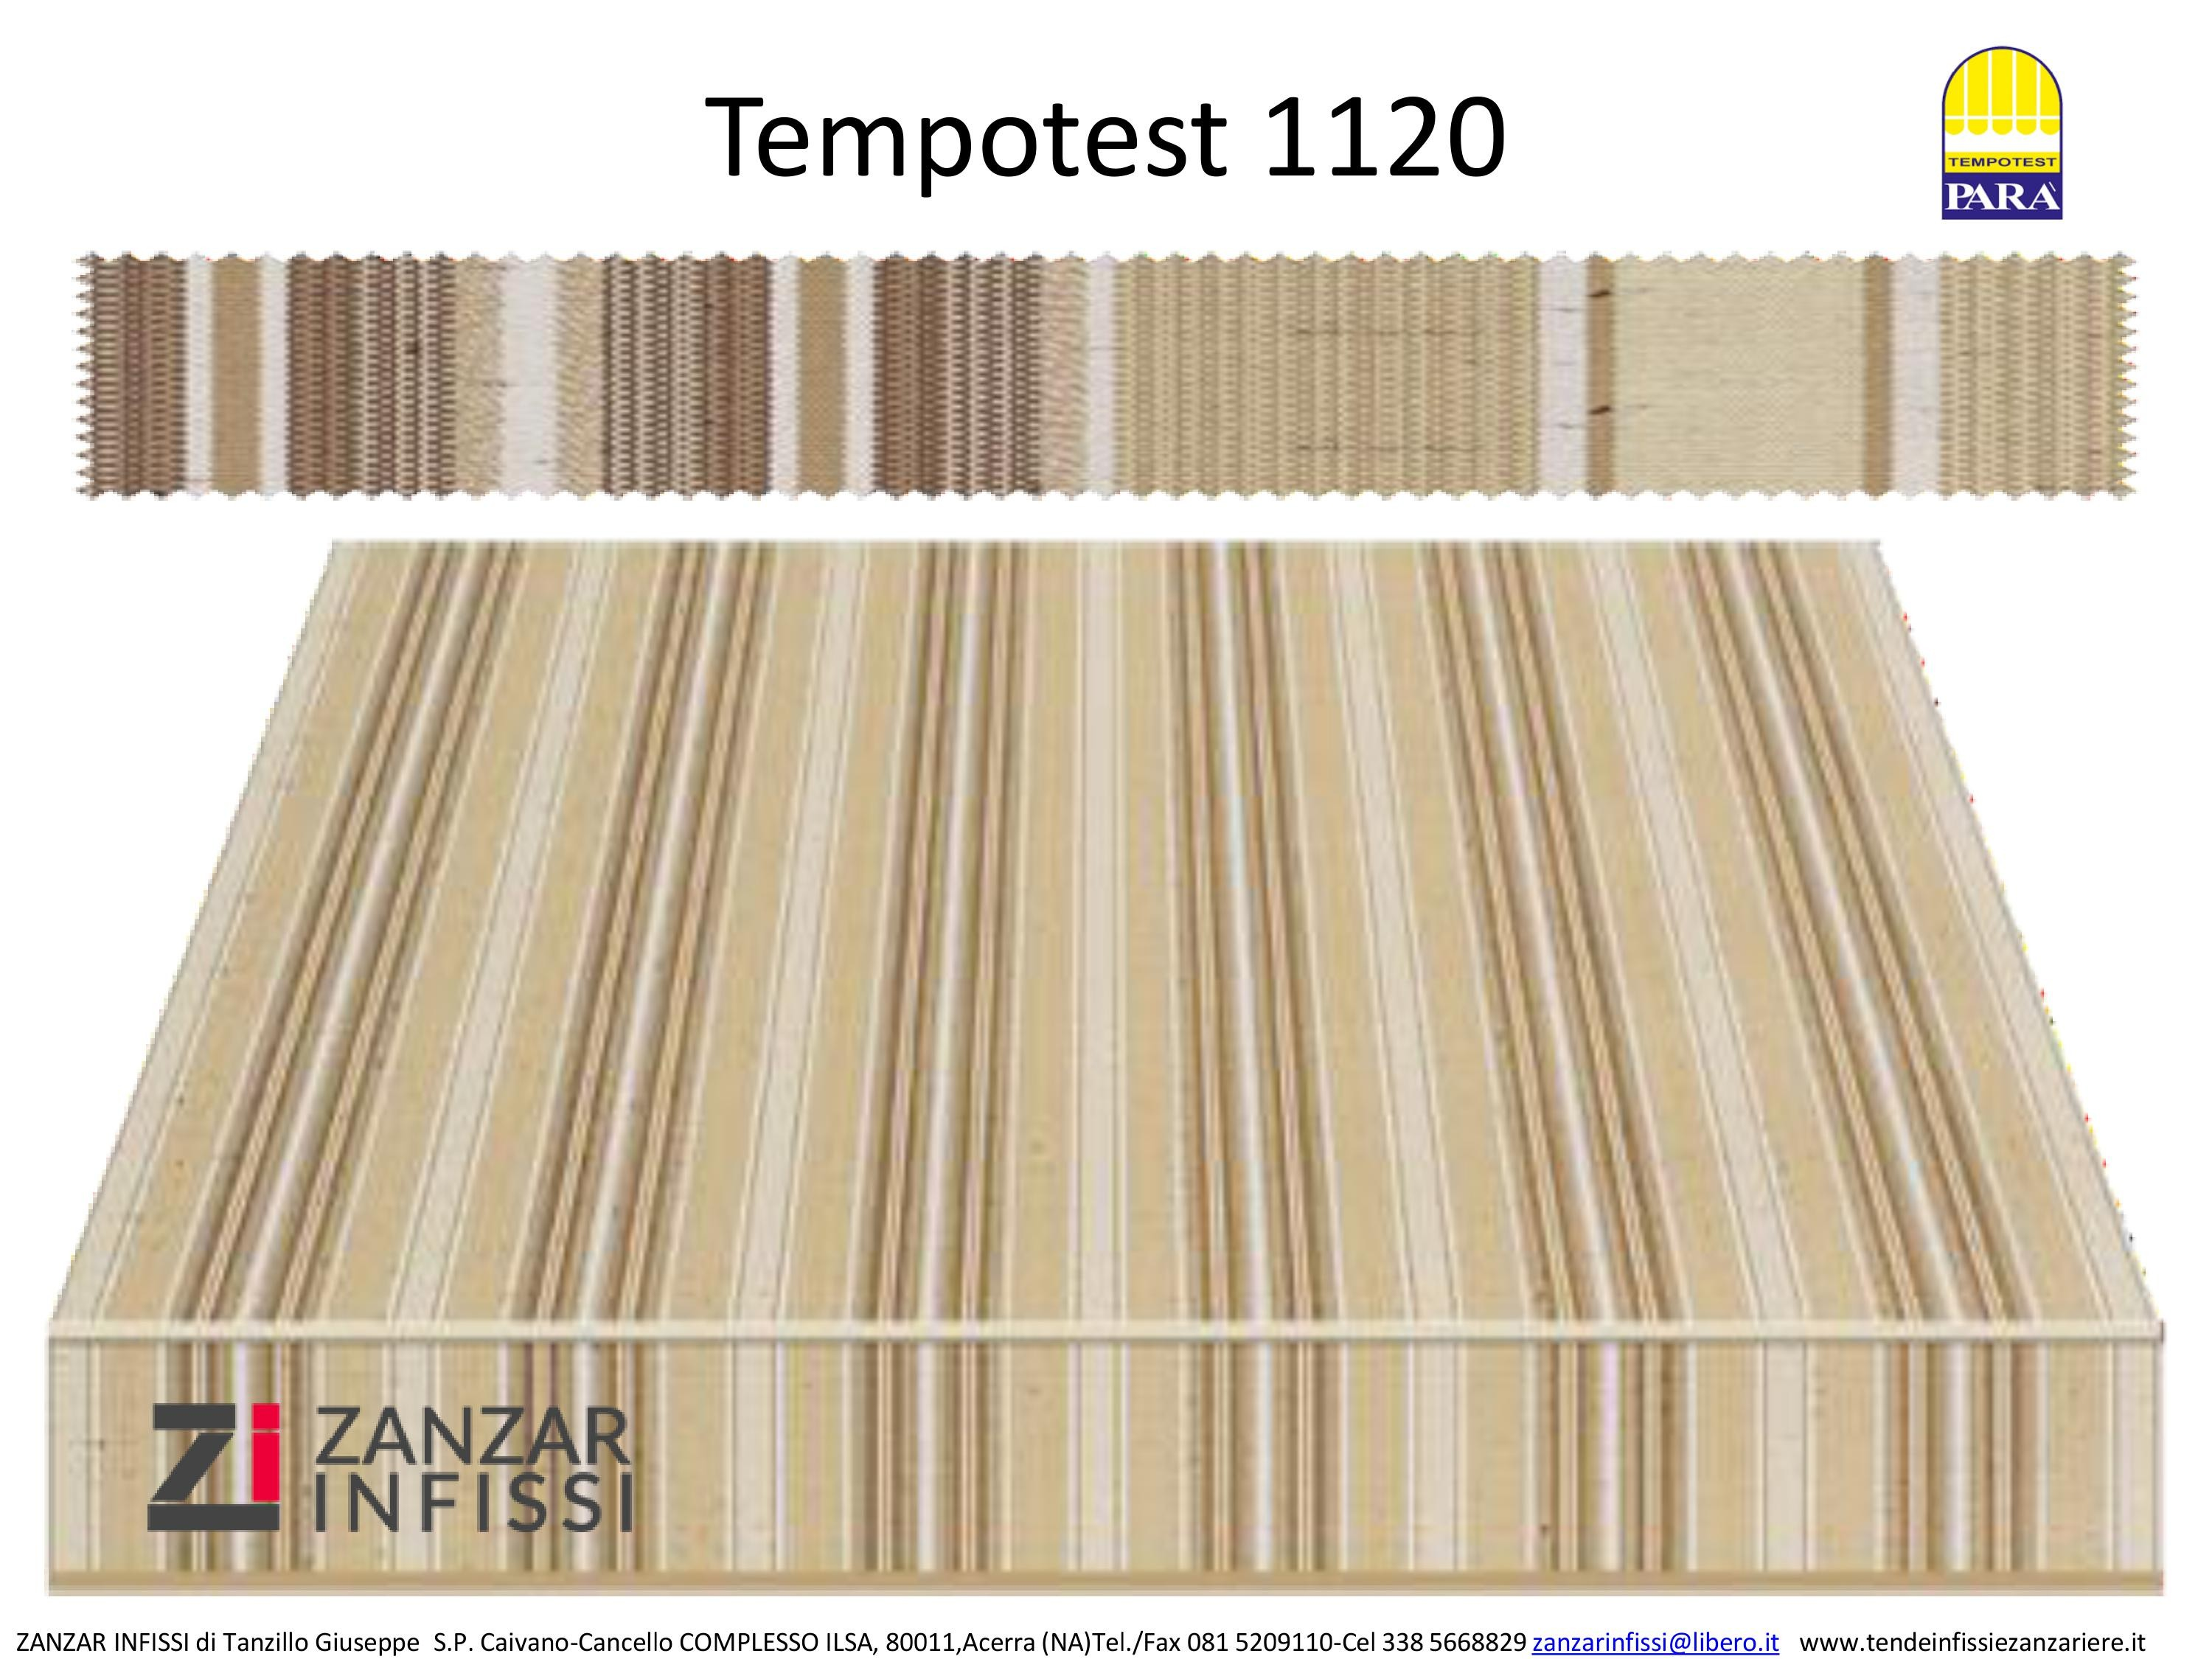 Tempotest 1120